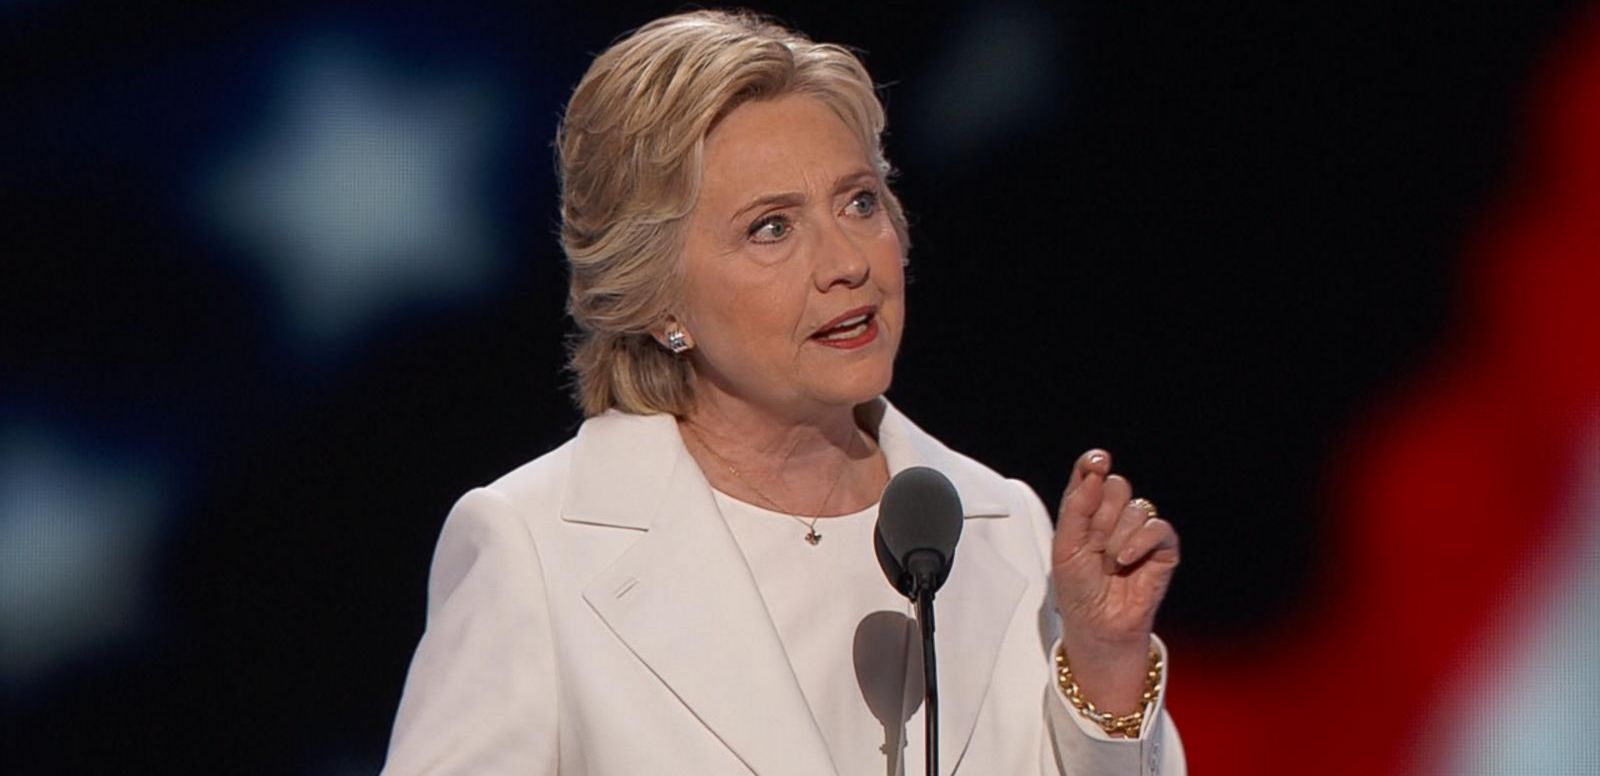 VIDEO: Hillary Clinton at the Democratic National Convention: 'We Are Stronger Together'